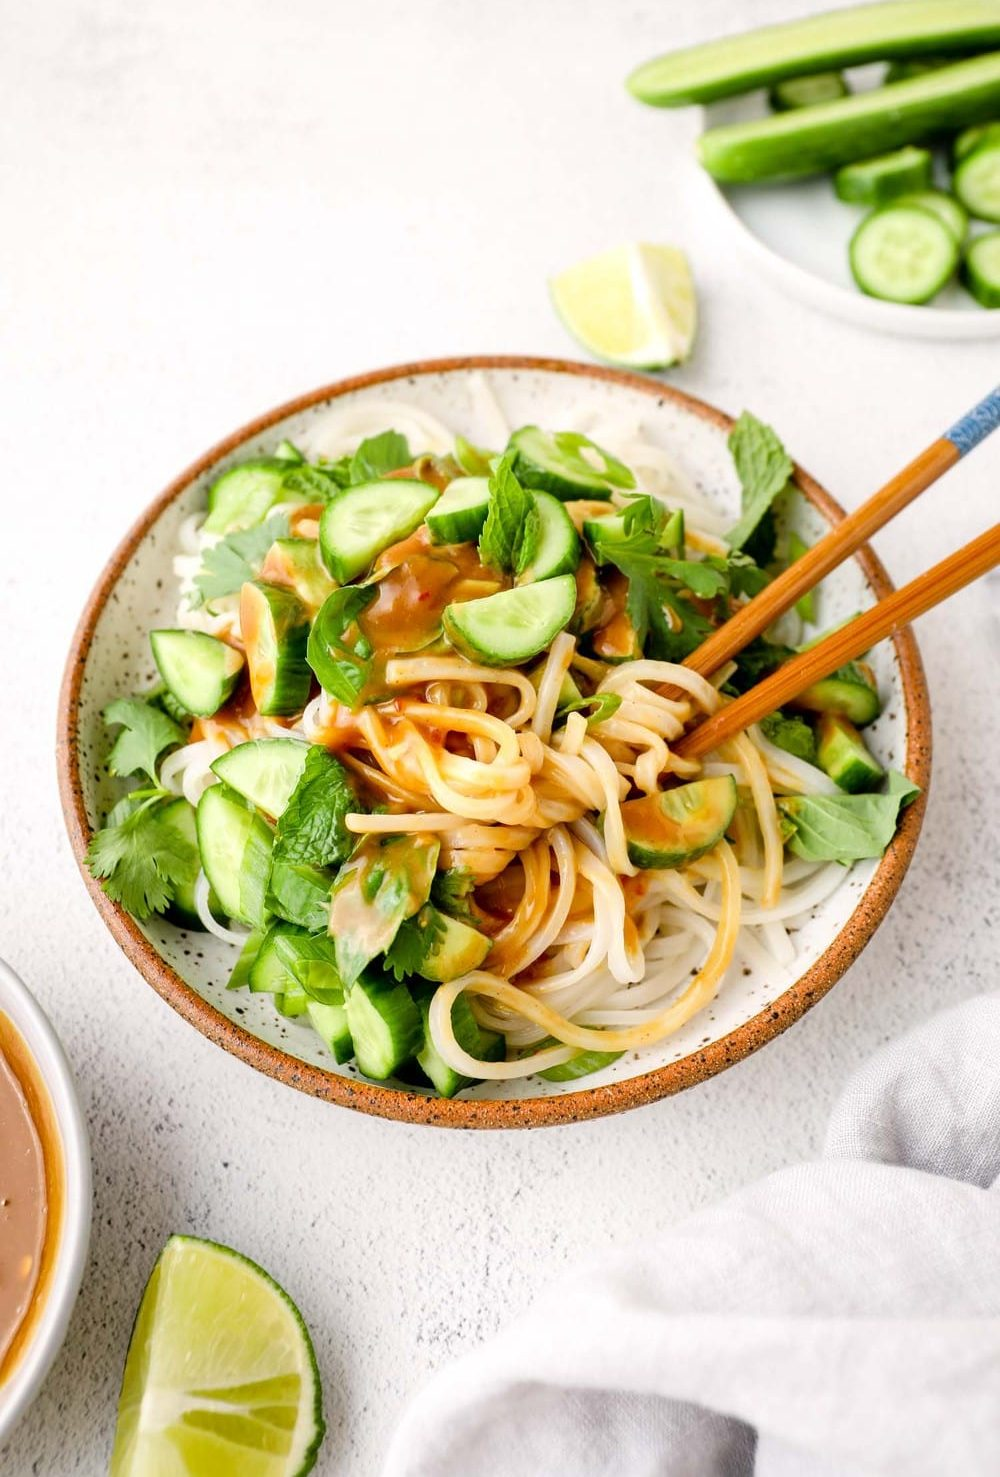 Vegan Summer Roll in a Bowl with chopsticks and peanut sauce.